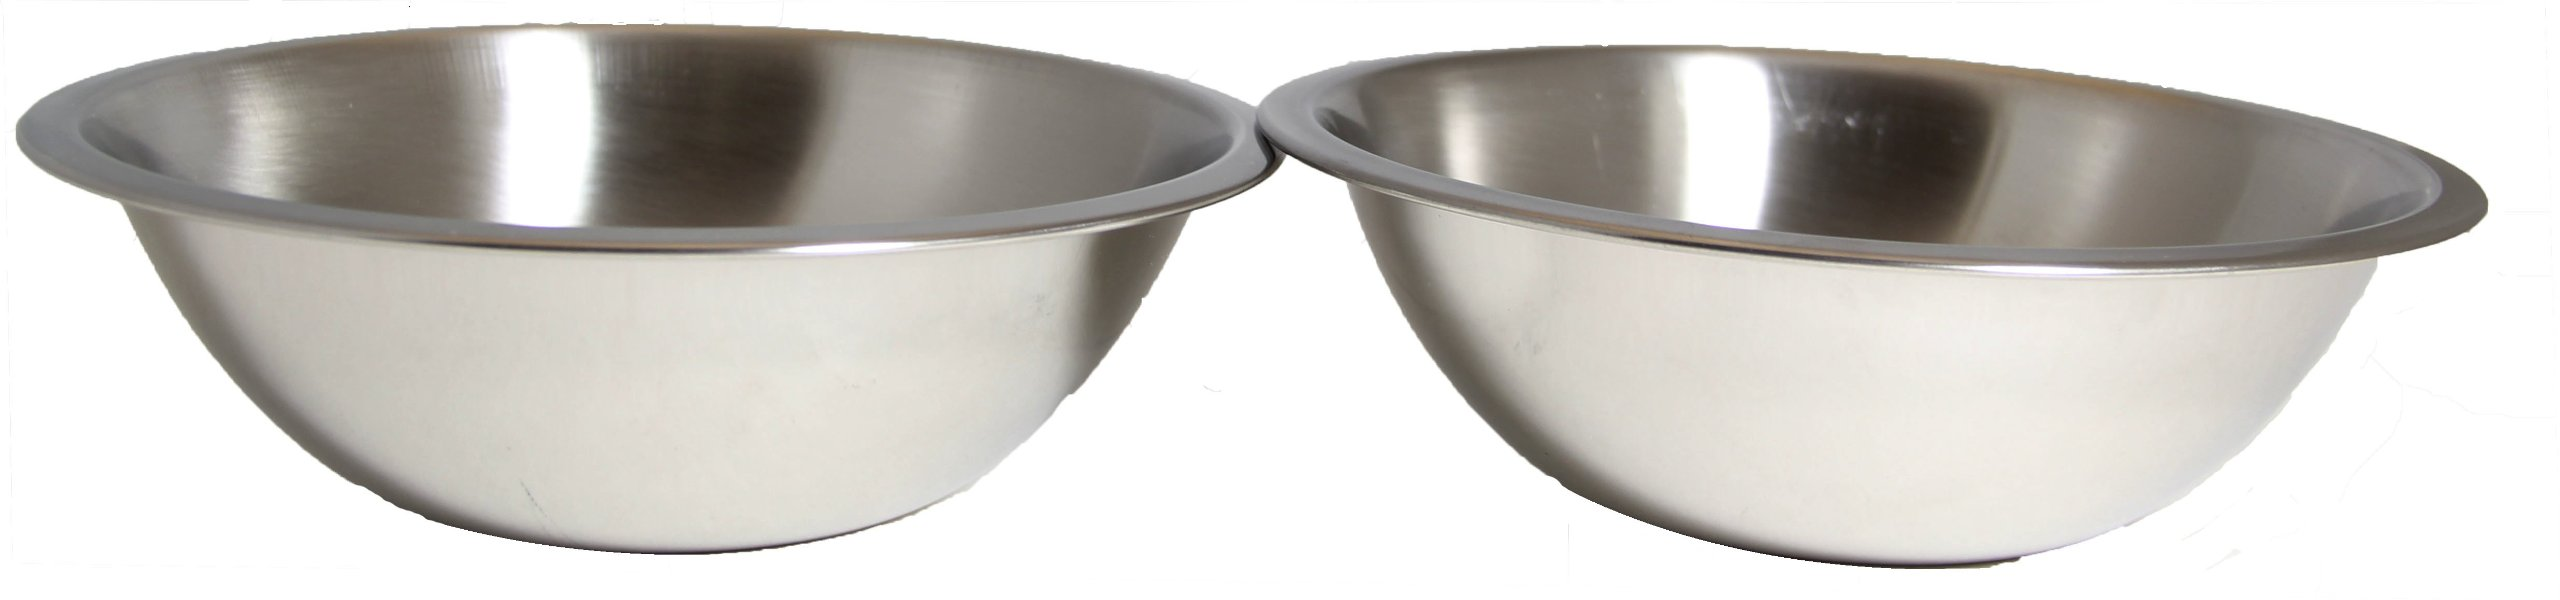 SET OF 2 - 10 Inch Wide Stainless Steel Flat Rim Flat Base Mixing Bowl